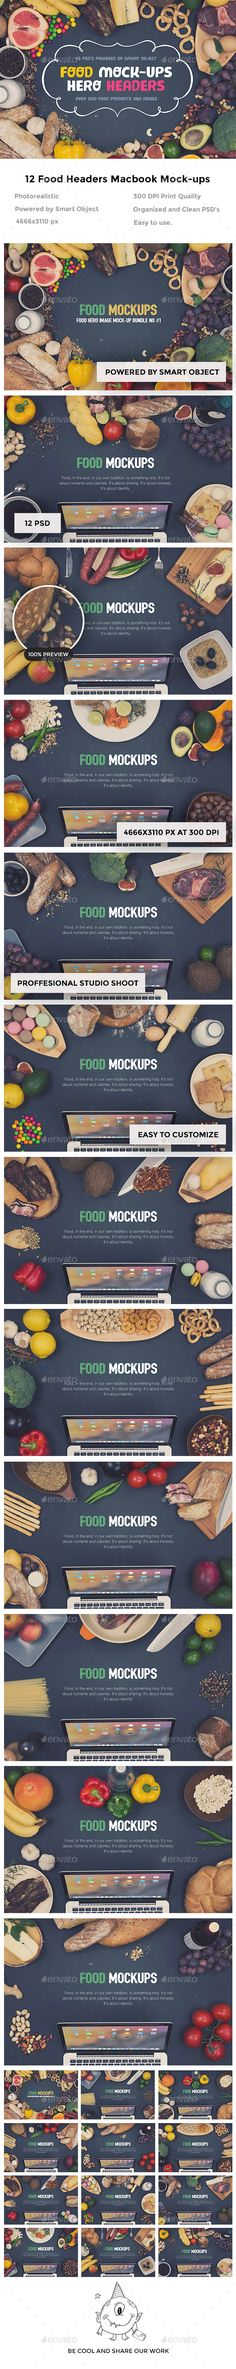 Food Hero Headers Macbook Mock-ups is a mockup psd template for hero images scene generator created by awesomegoodies. Mockup Photoshop, No Photoshop, Macbook Mockup, Mockup Generator, Website Header, Header Image, Scene Creator, Web Design Trends, Blog